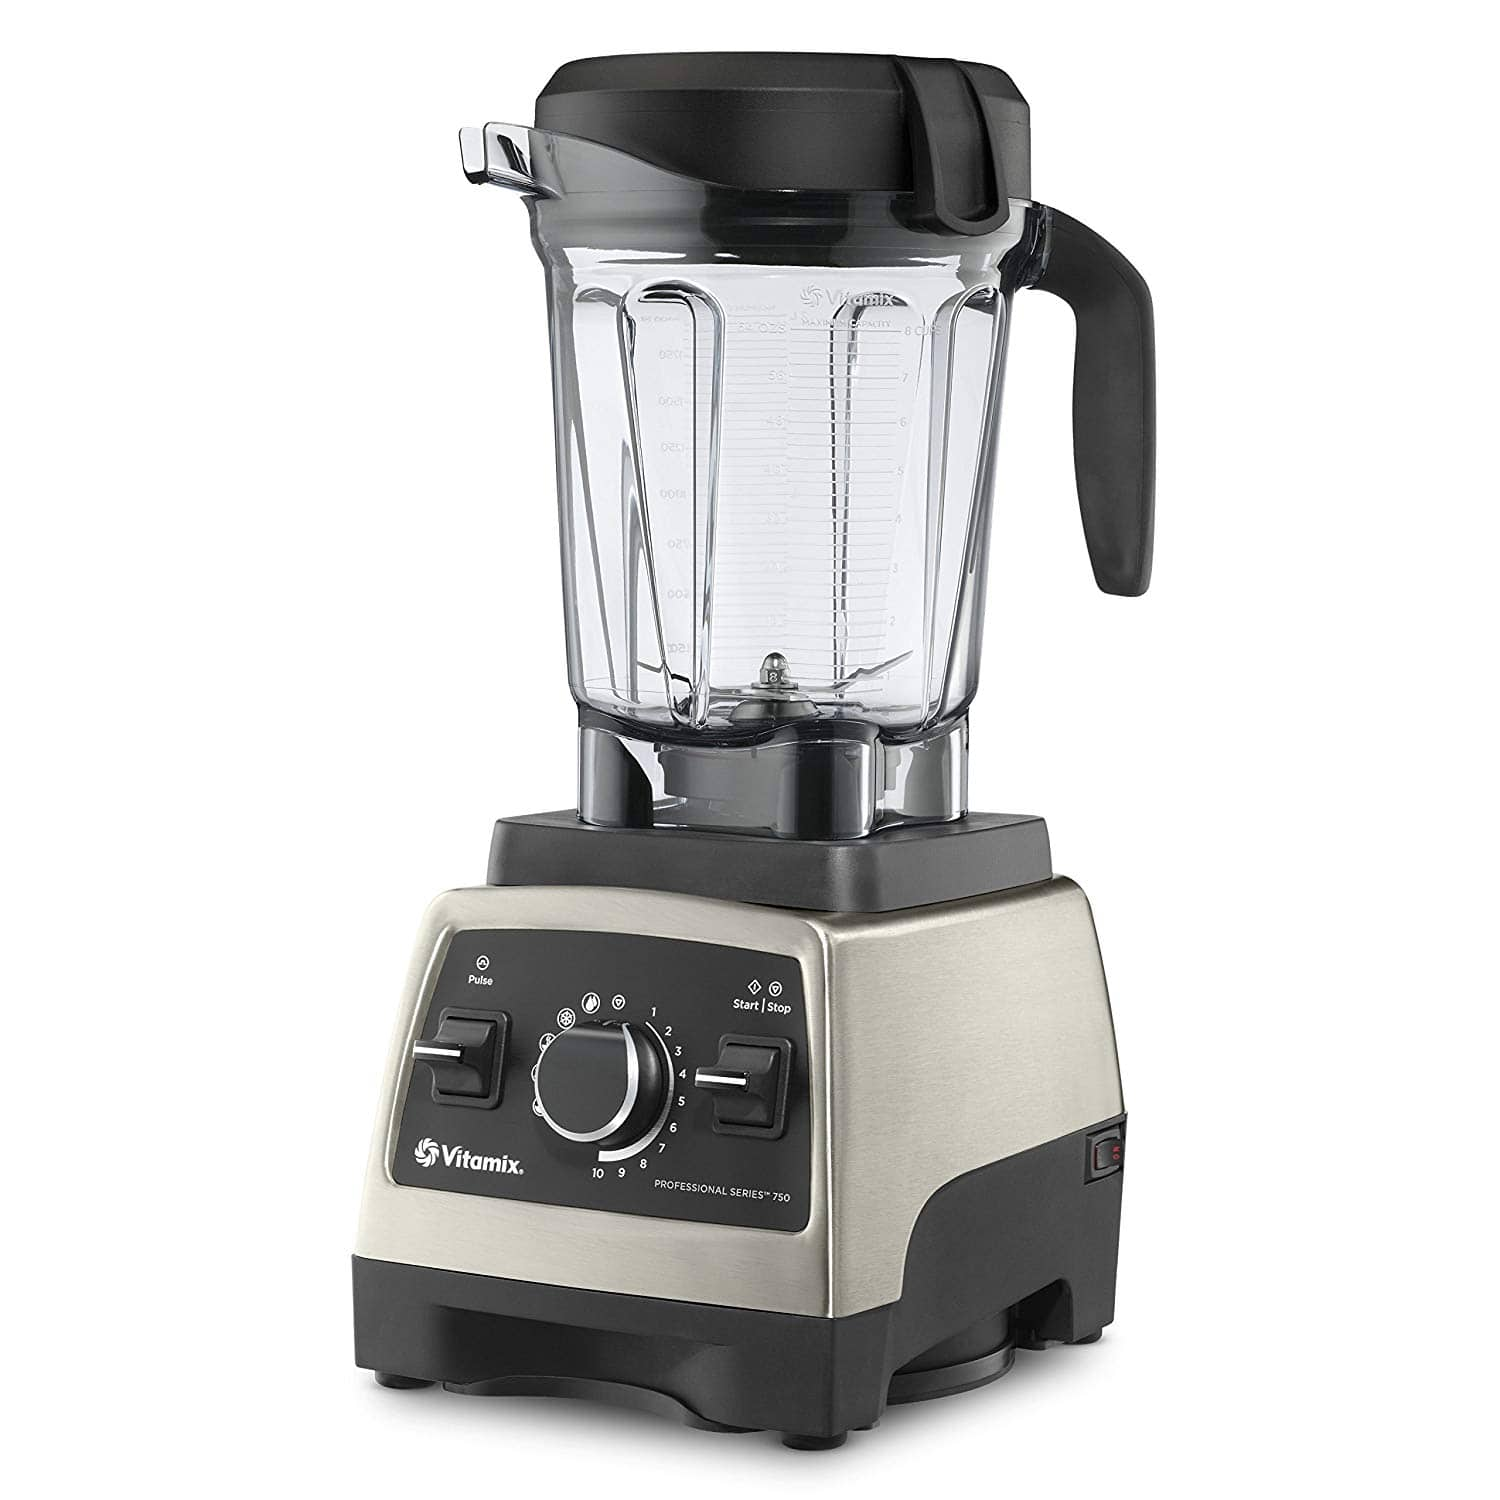 [Dead] Vitamix Professional Series 750 Heritage w/ 64 oz. Container FS with Prime $478.95